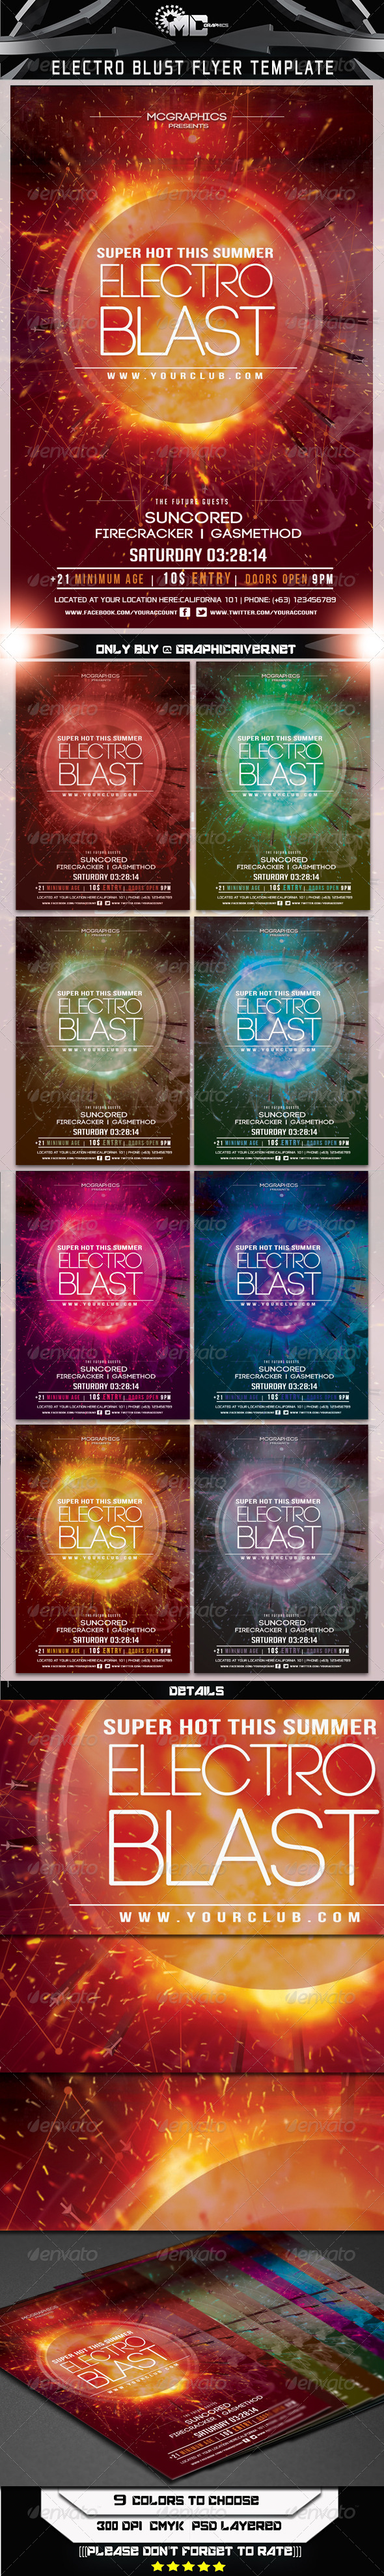 GraphicRiver Electro Blast Flyer Template 6984500